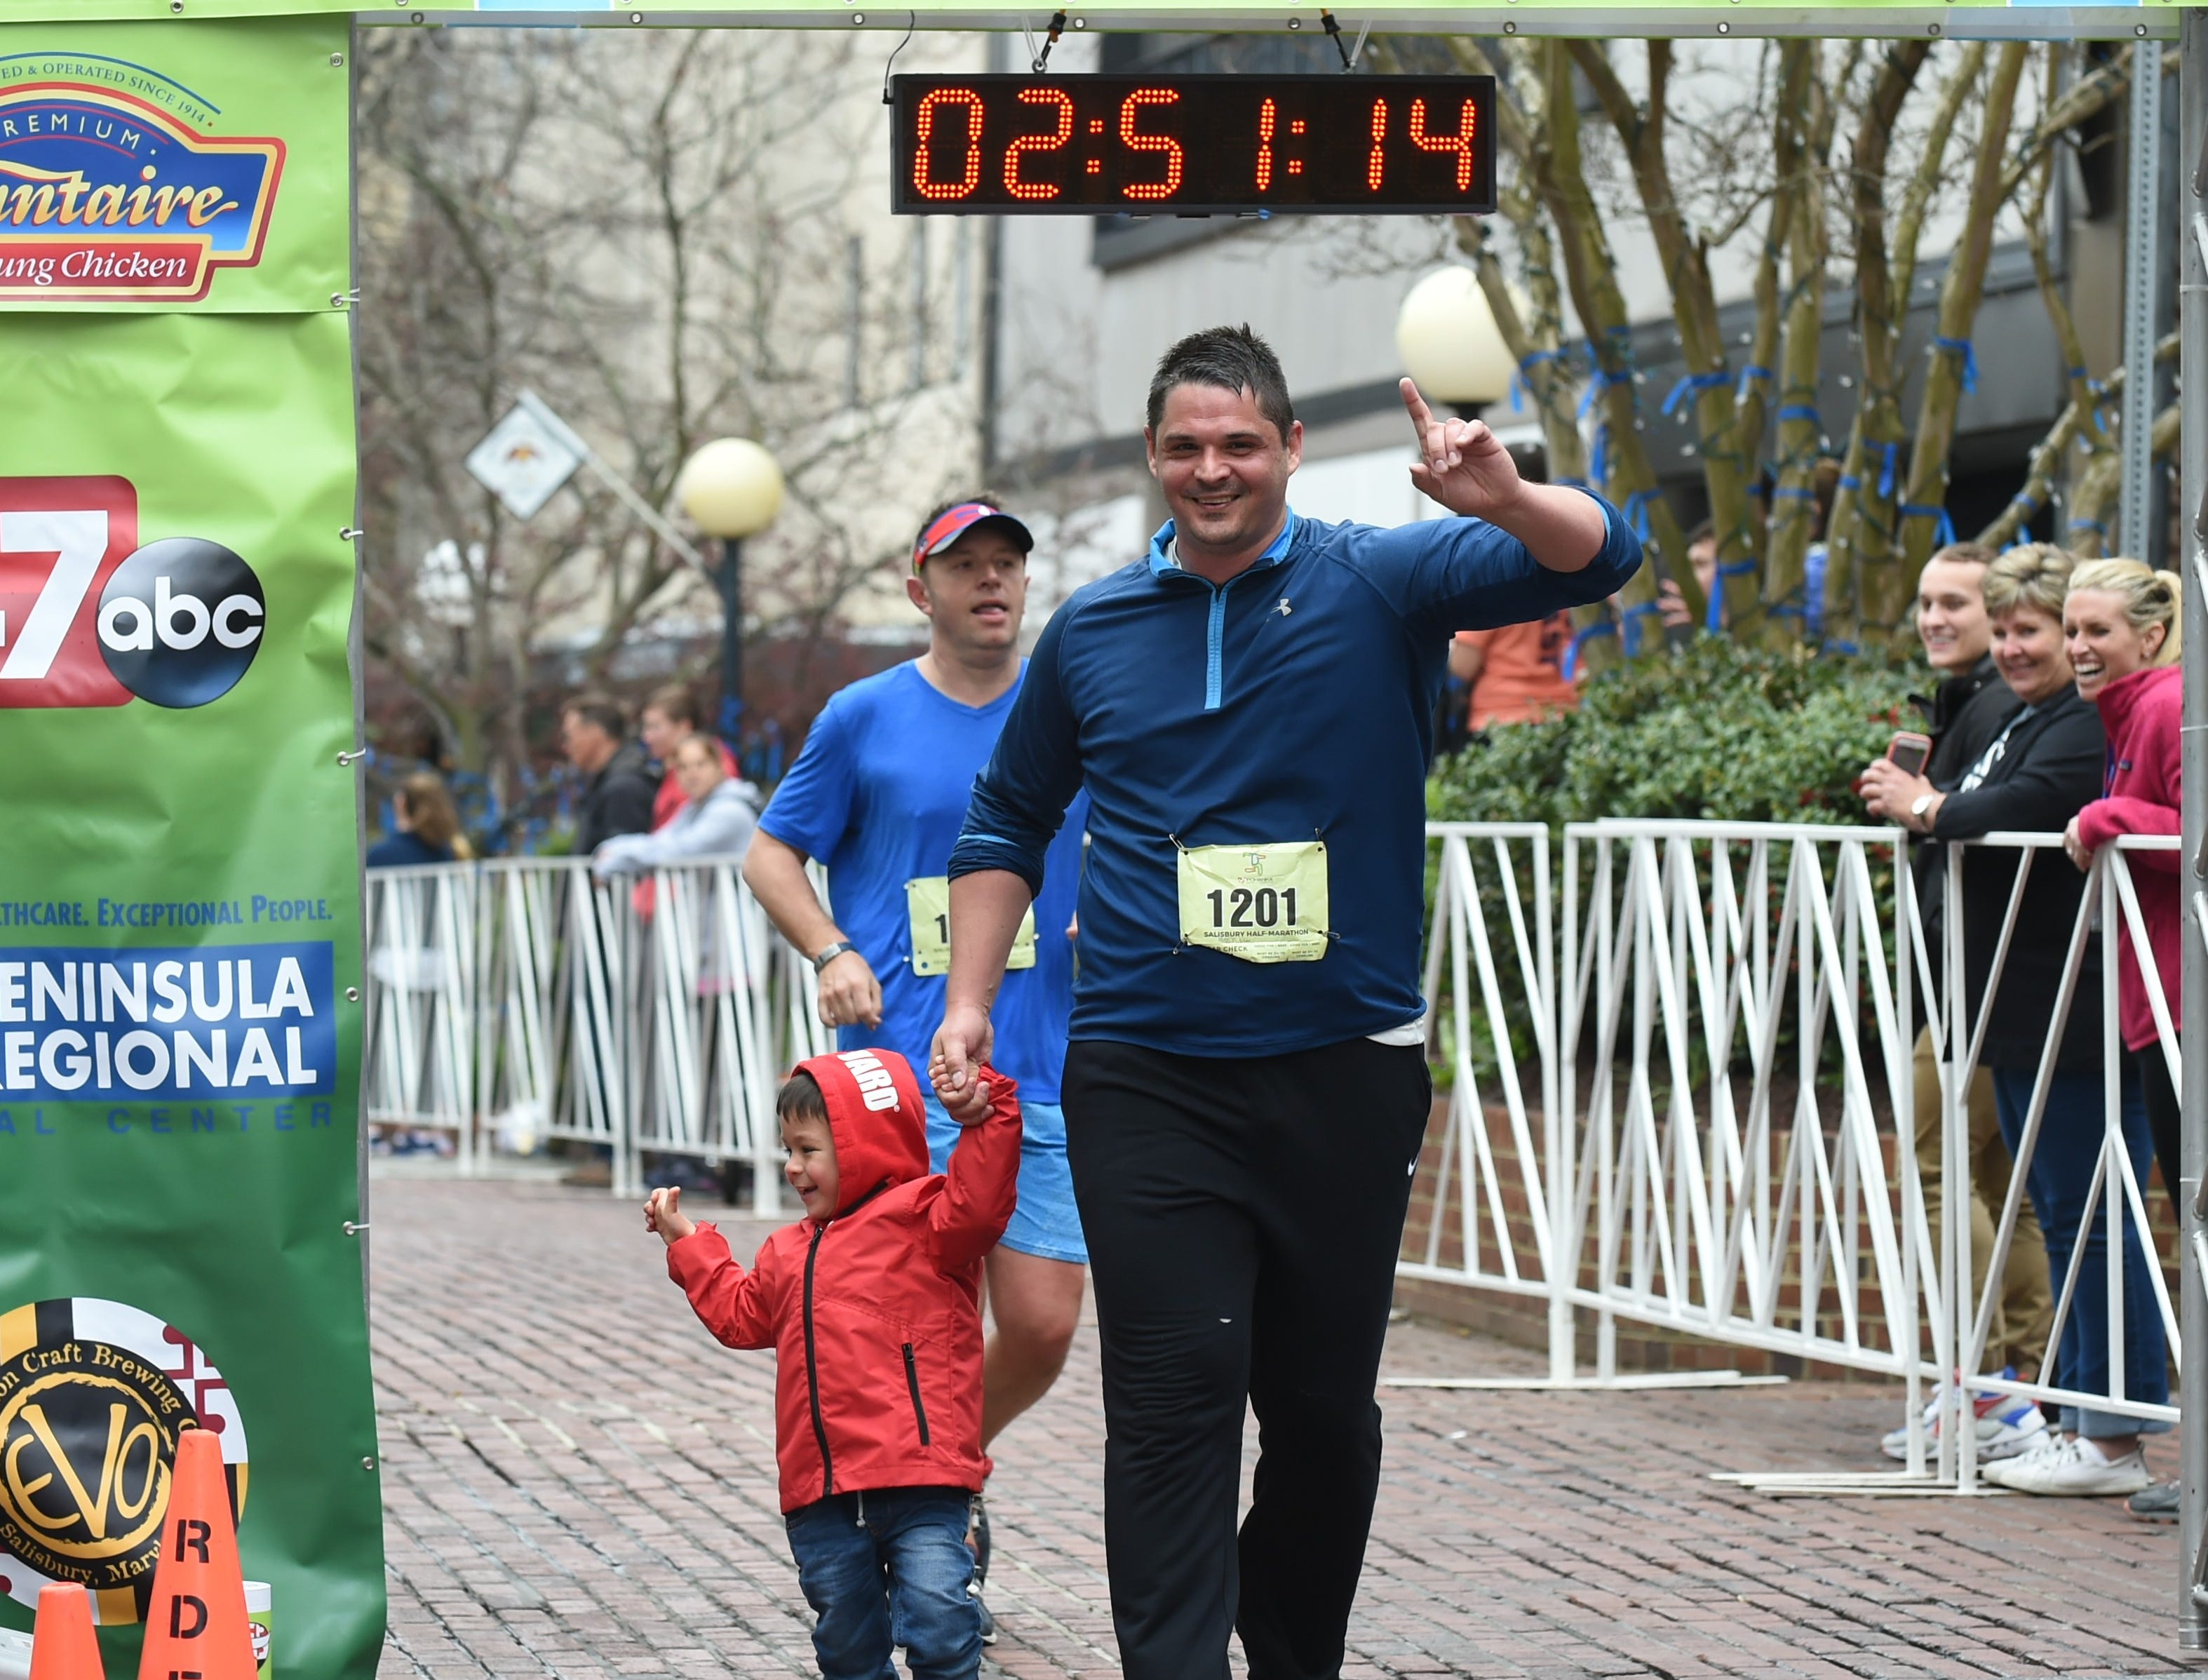 Andrew Davis crosses the finish line with his son after running in the 2nd Salisbury Marathon/ Half Marathon/ 5k on Saturday, April 6, 2019.